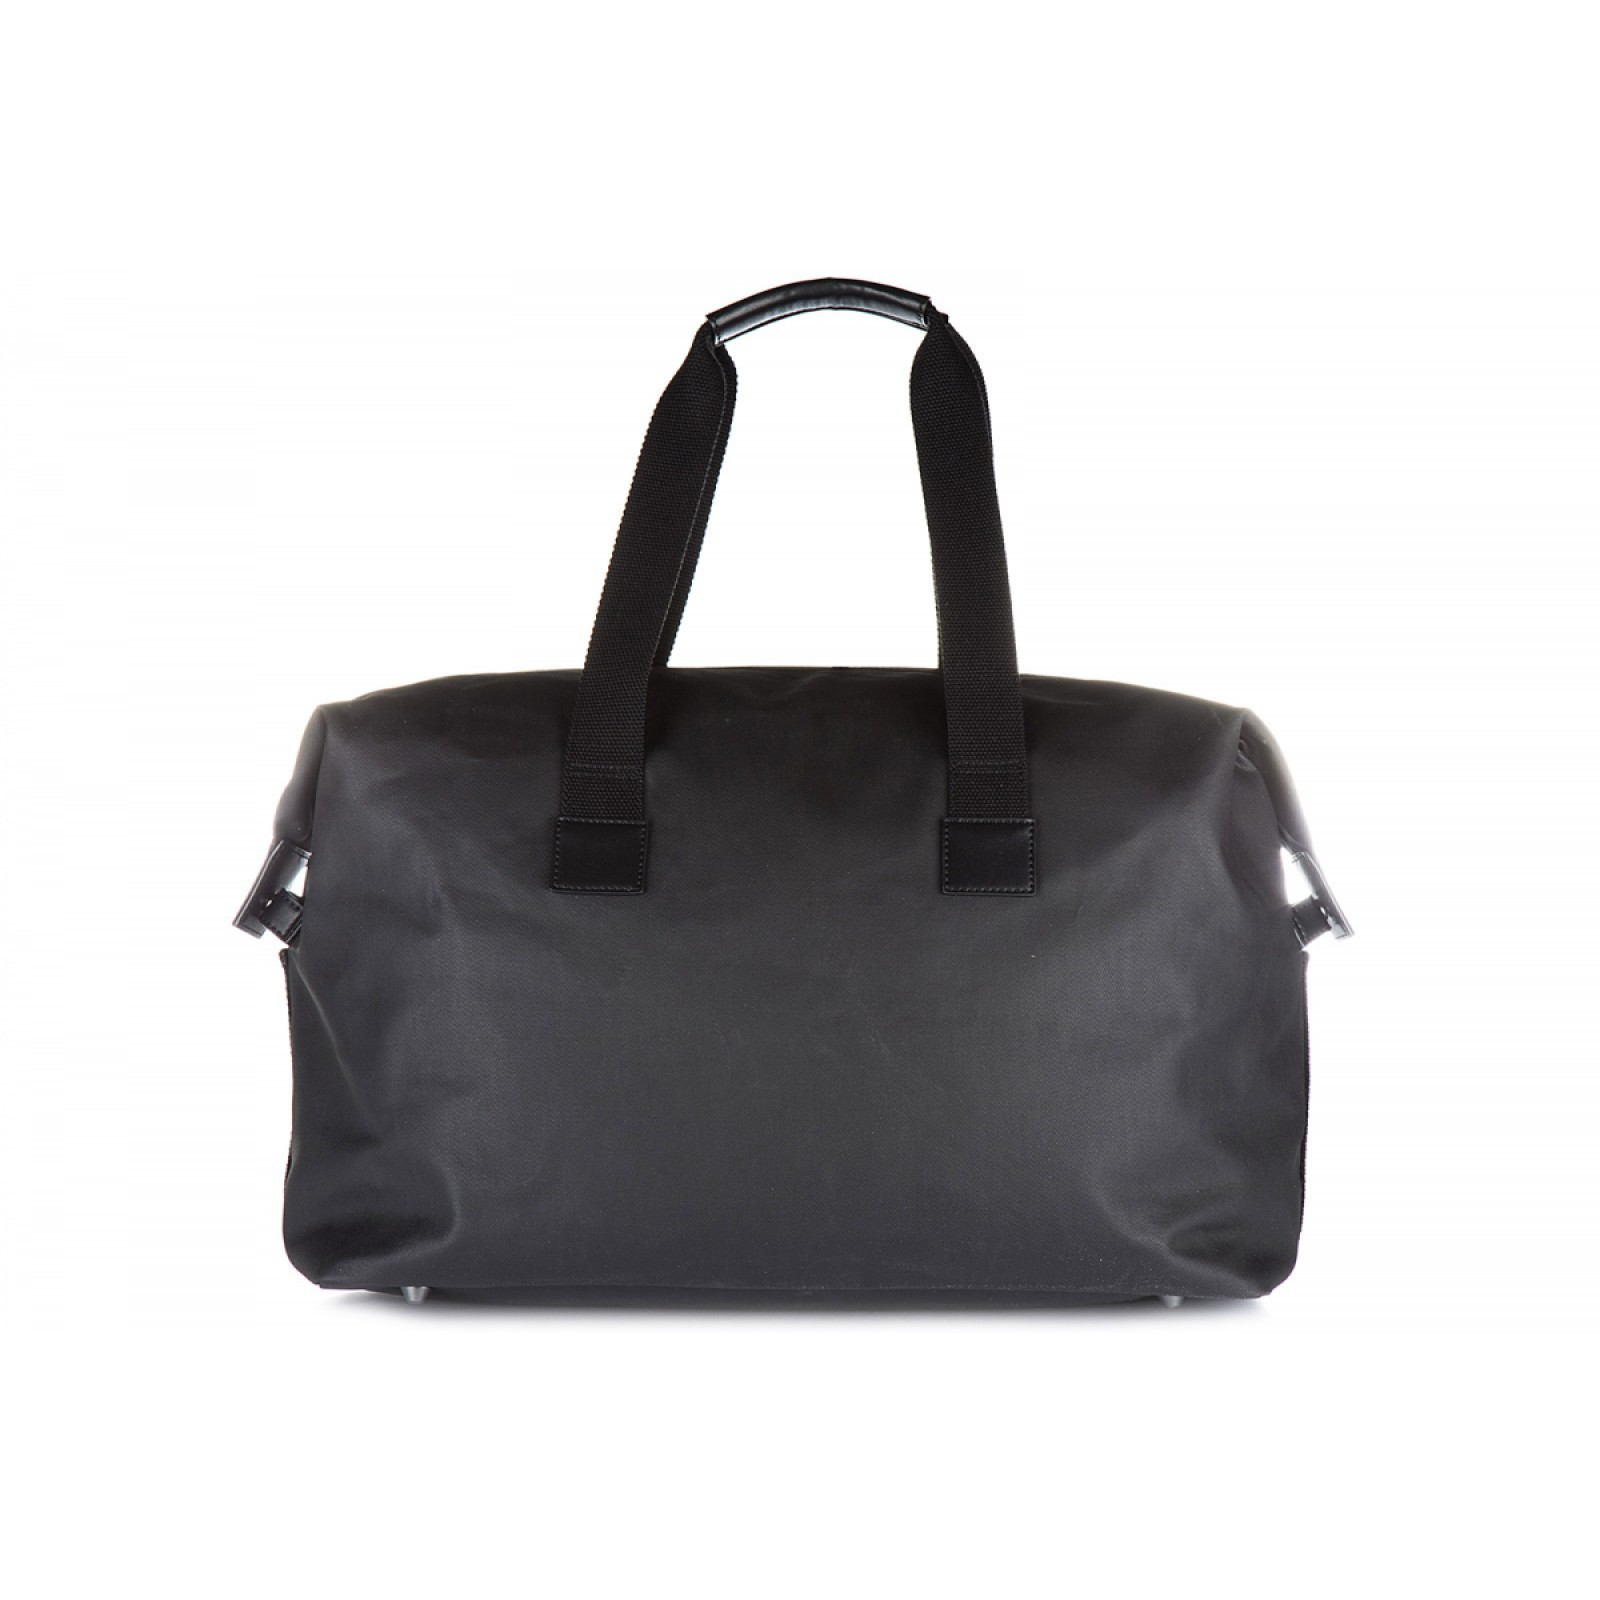 送料込 Travel duffle weekend shoulder bag バッグ